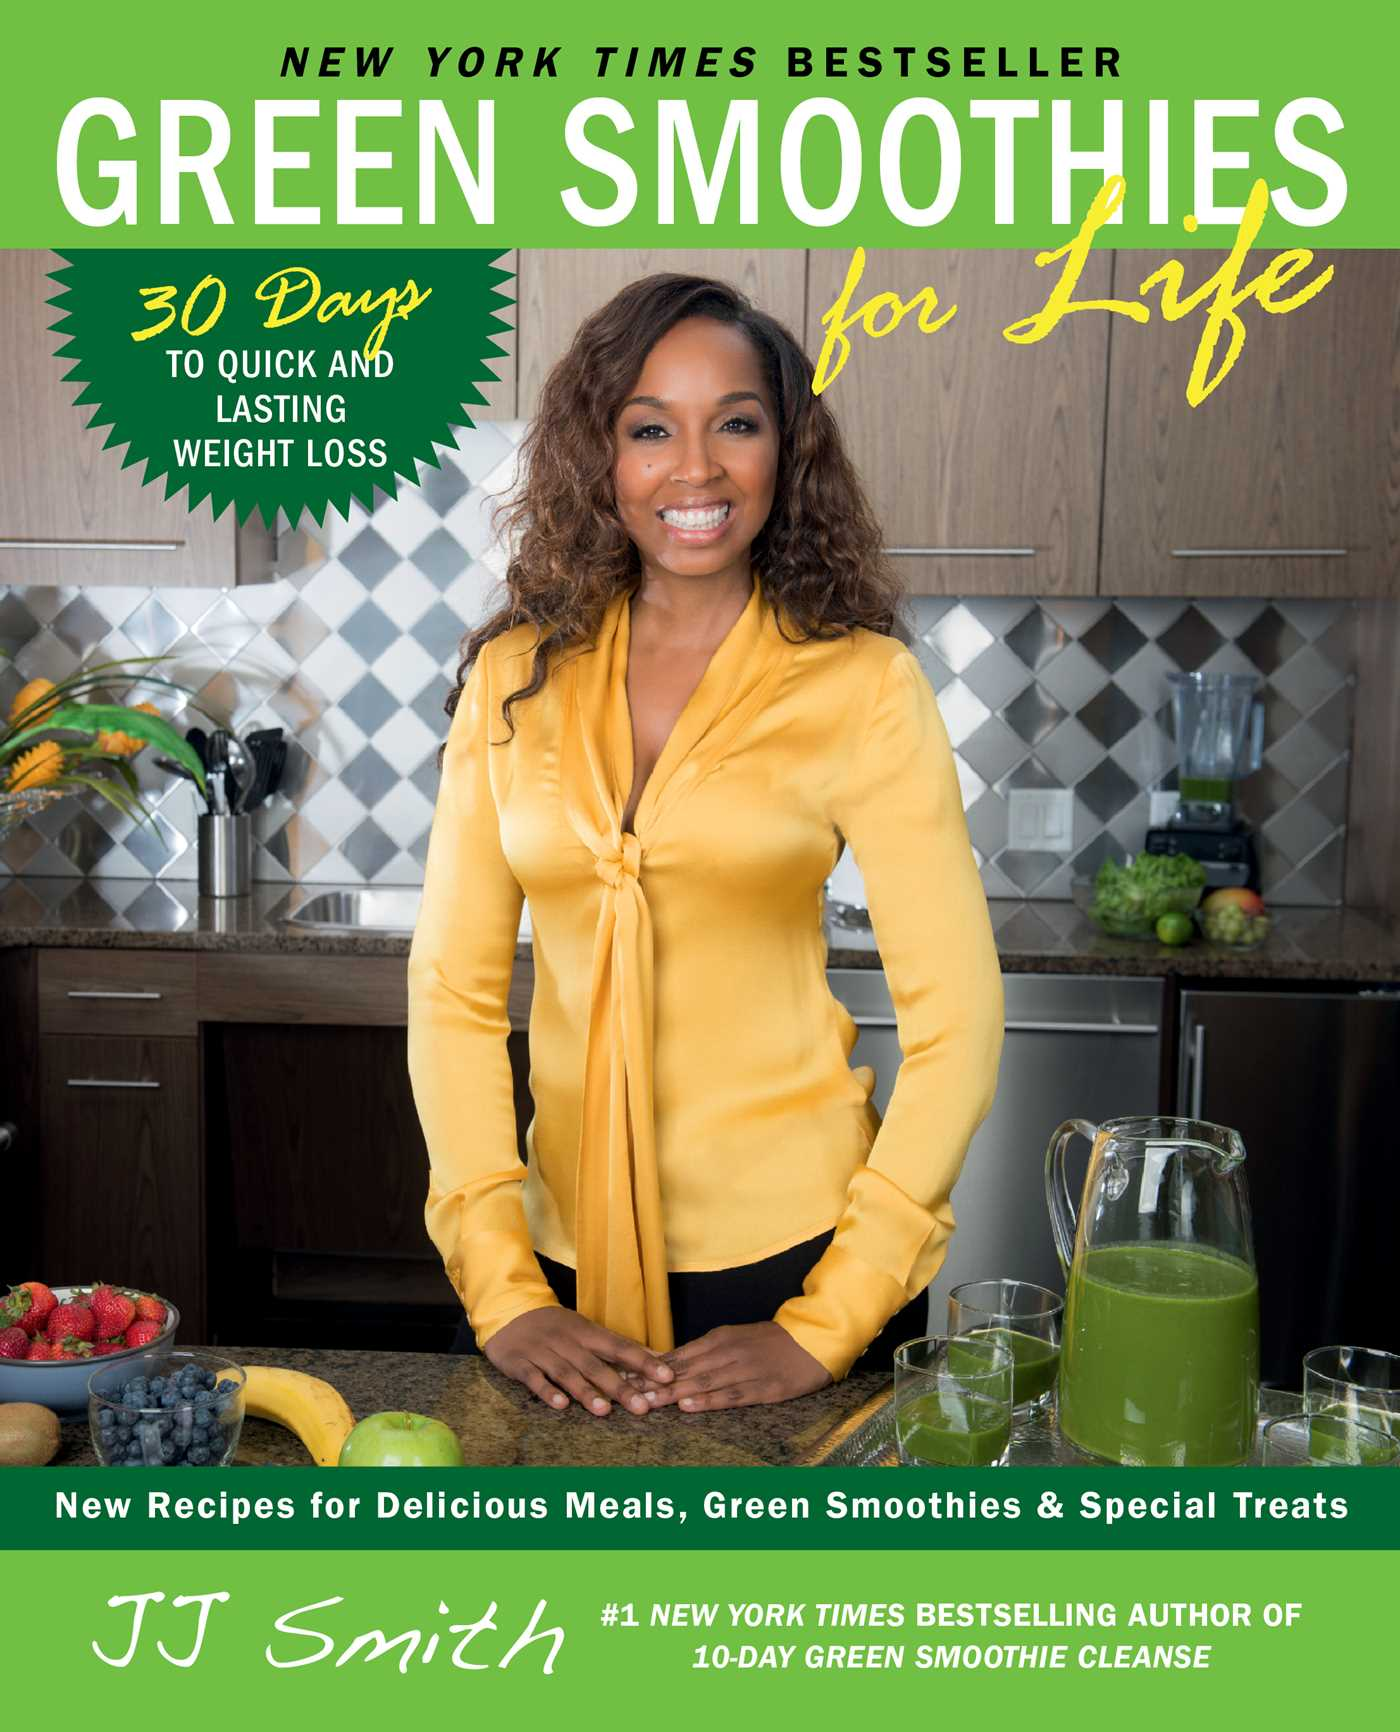 Green smoothies for life 9781501100659 hr